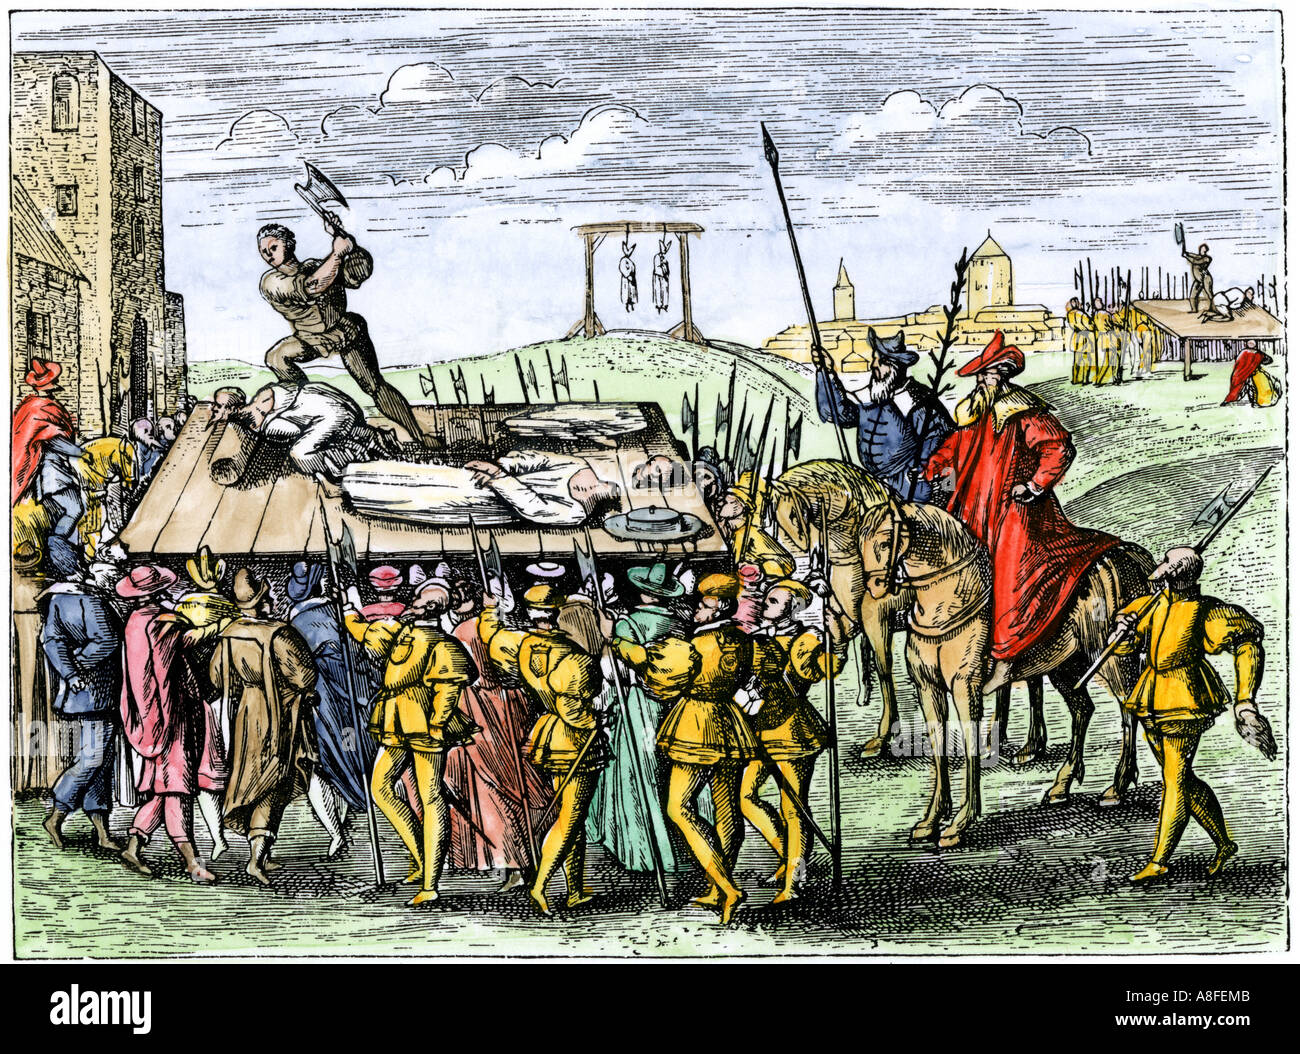 Roman Catholics beheaded by order of Henry VIII including Thomas More, John Fisher and the Countess of Salisbury 1535. Hand-colored woodcut - Stock Image